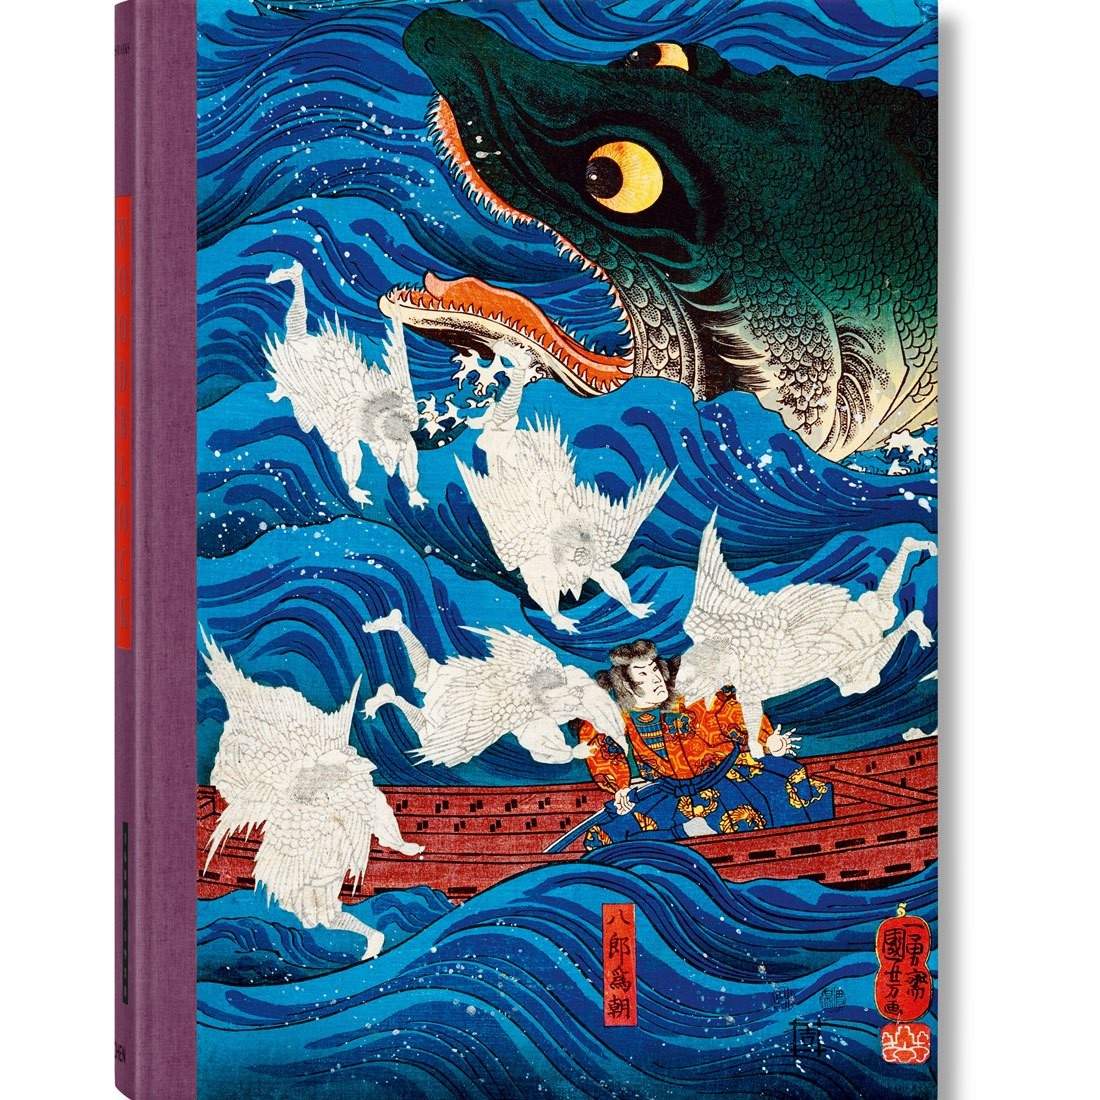 Japanese Woodblock Prints Hardcover Book (blue / hardcover)